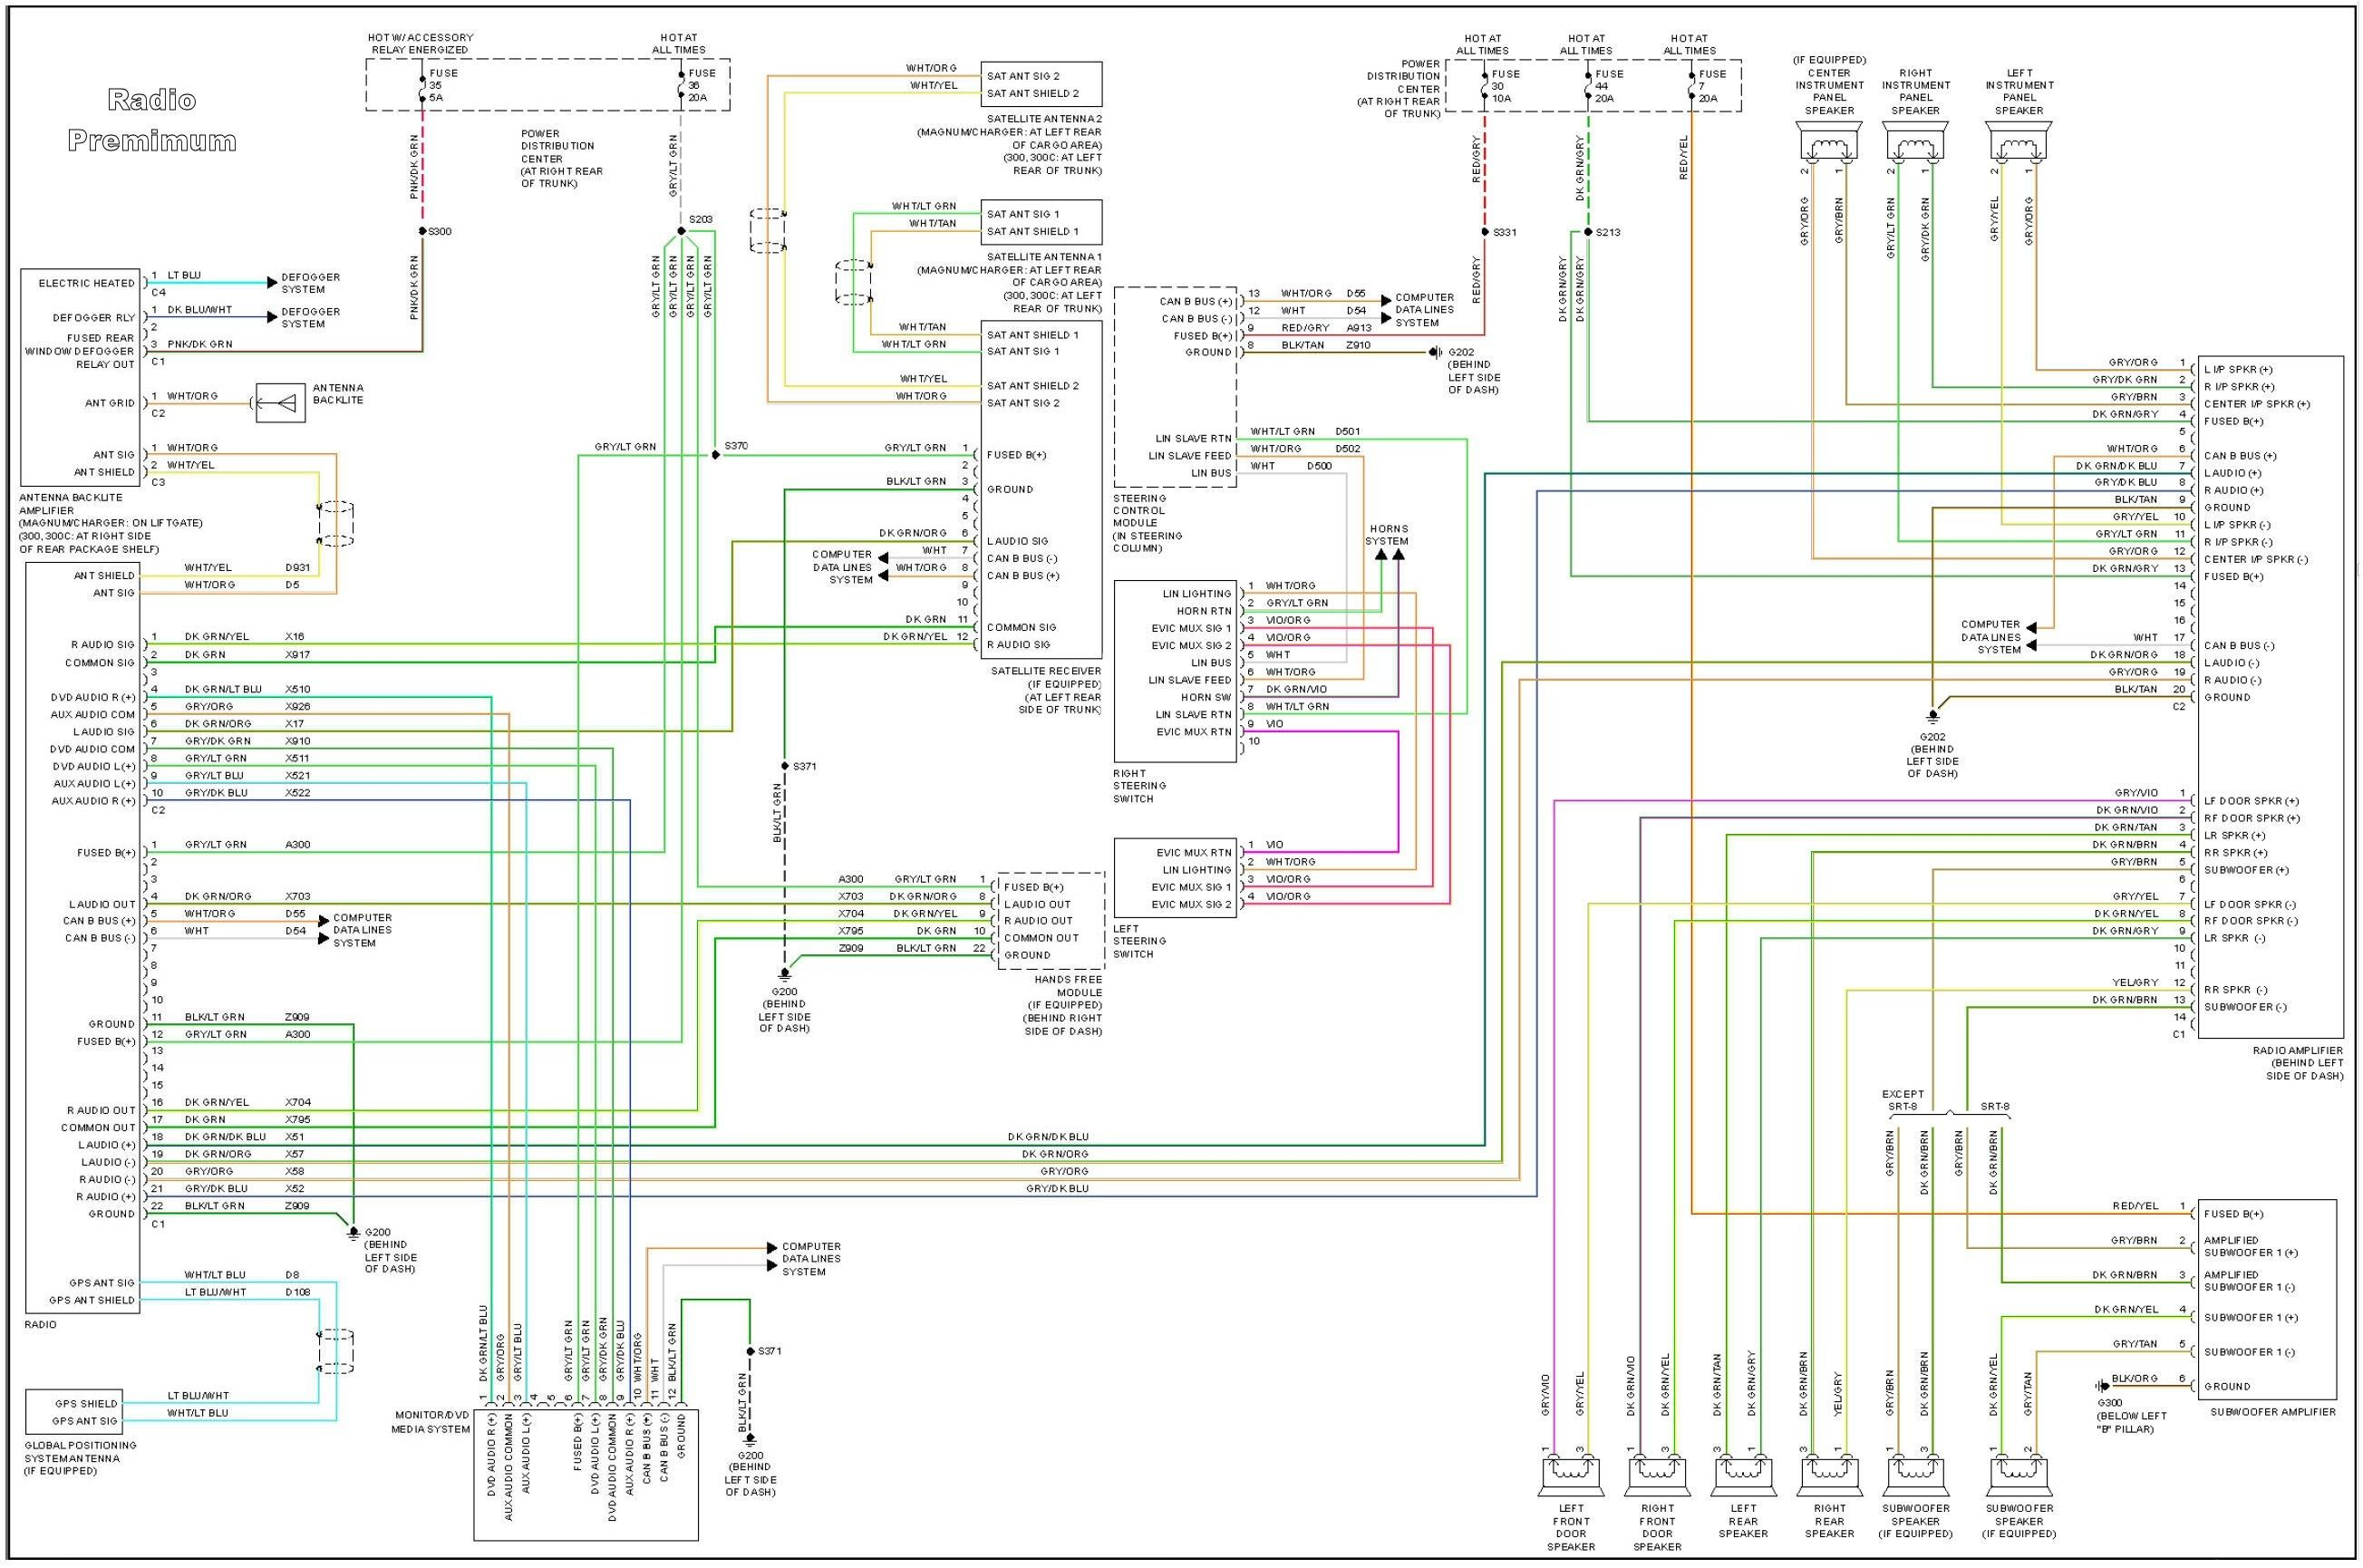 dodge grand caravan wiring harness diagram unique 2002 dodge ram 1500 instrument cluster wiring diagram  2002 dodge ram 1500 instrument cluster